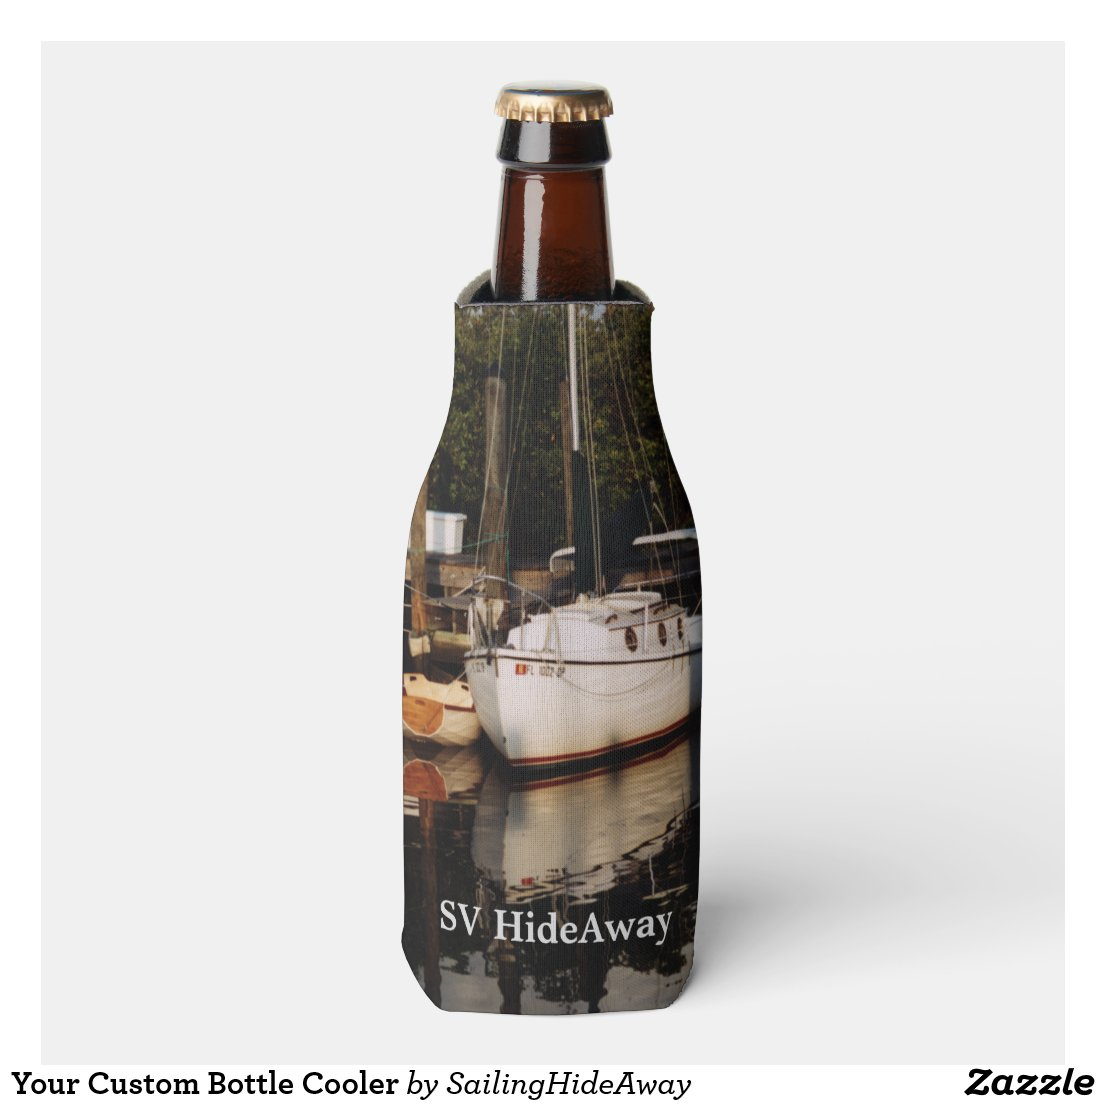 Your Custom Bottle Cooler